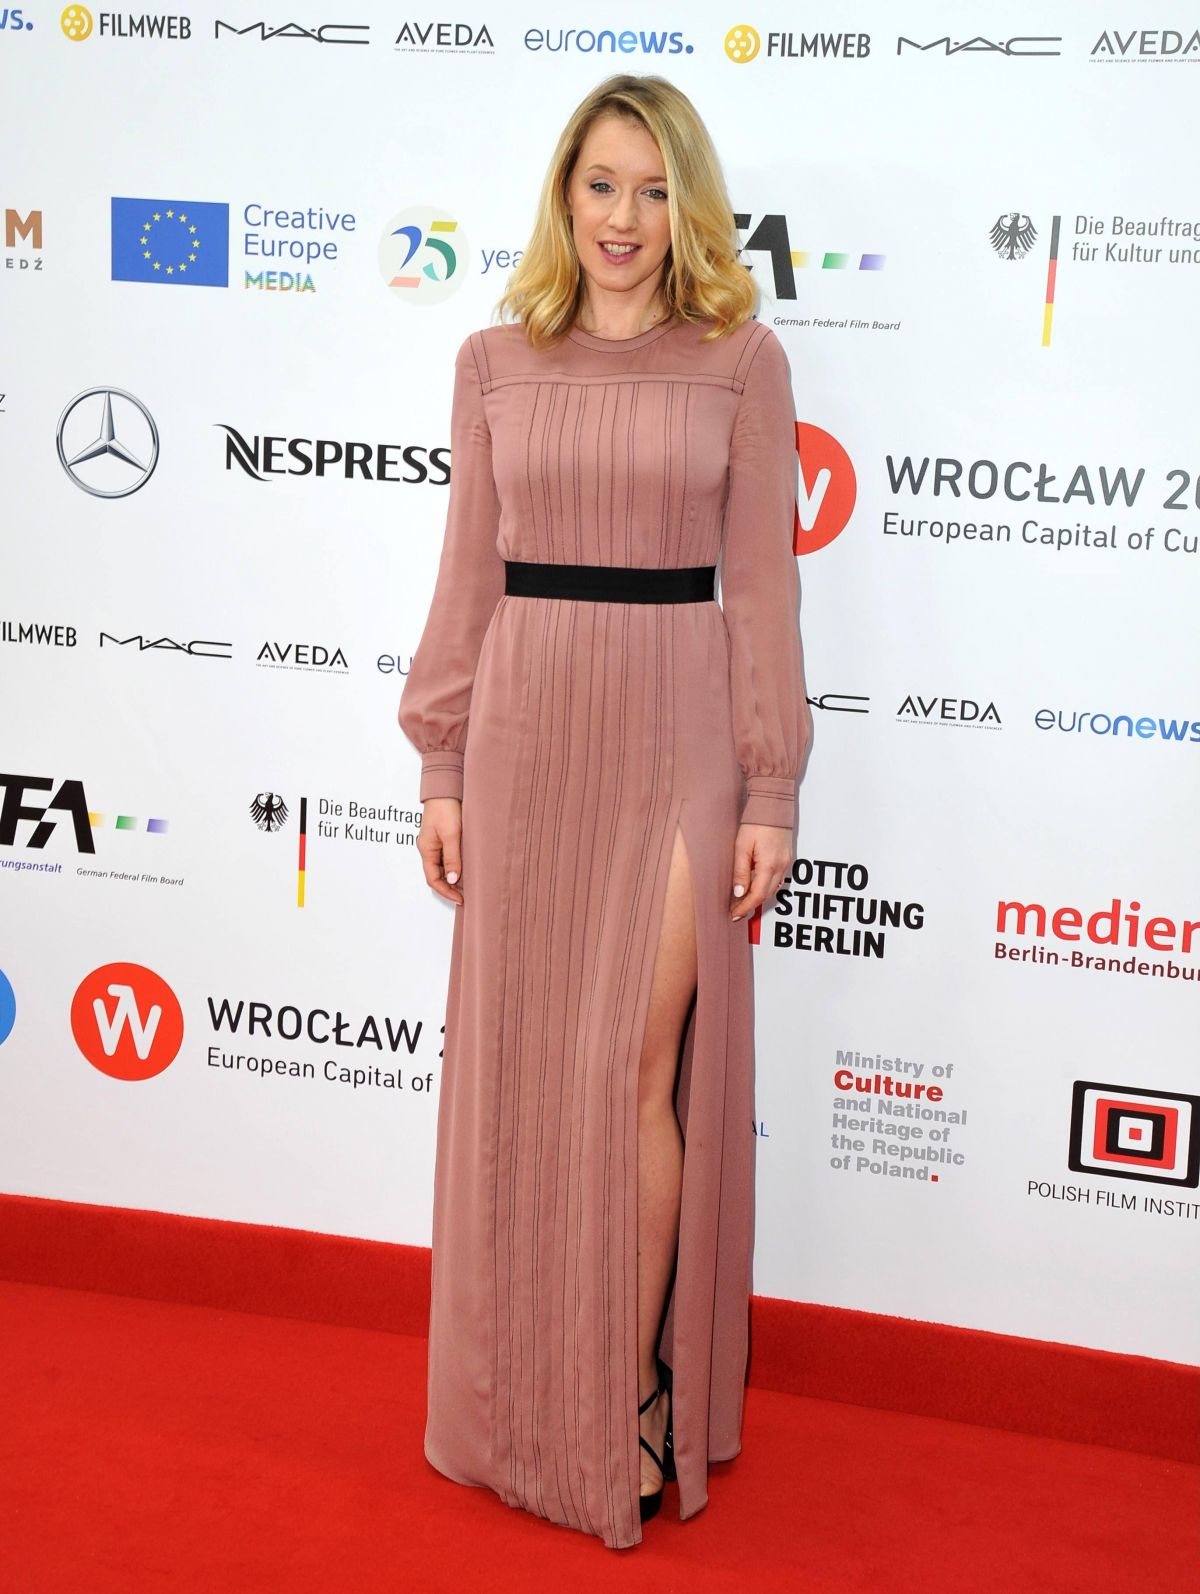 LUDIVINE SAGNIER at 29th European Film Awards in Wroclaw 12/10/2016